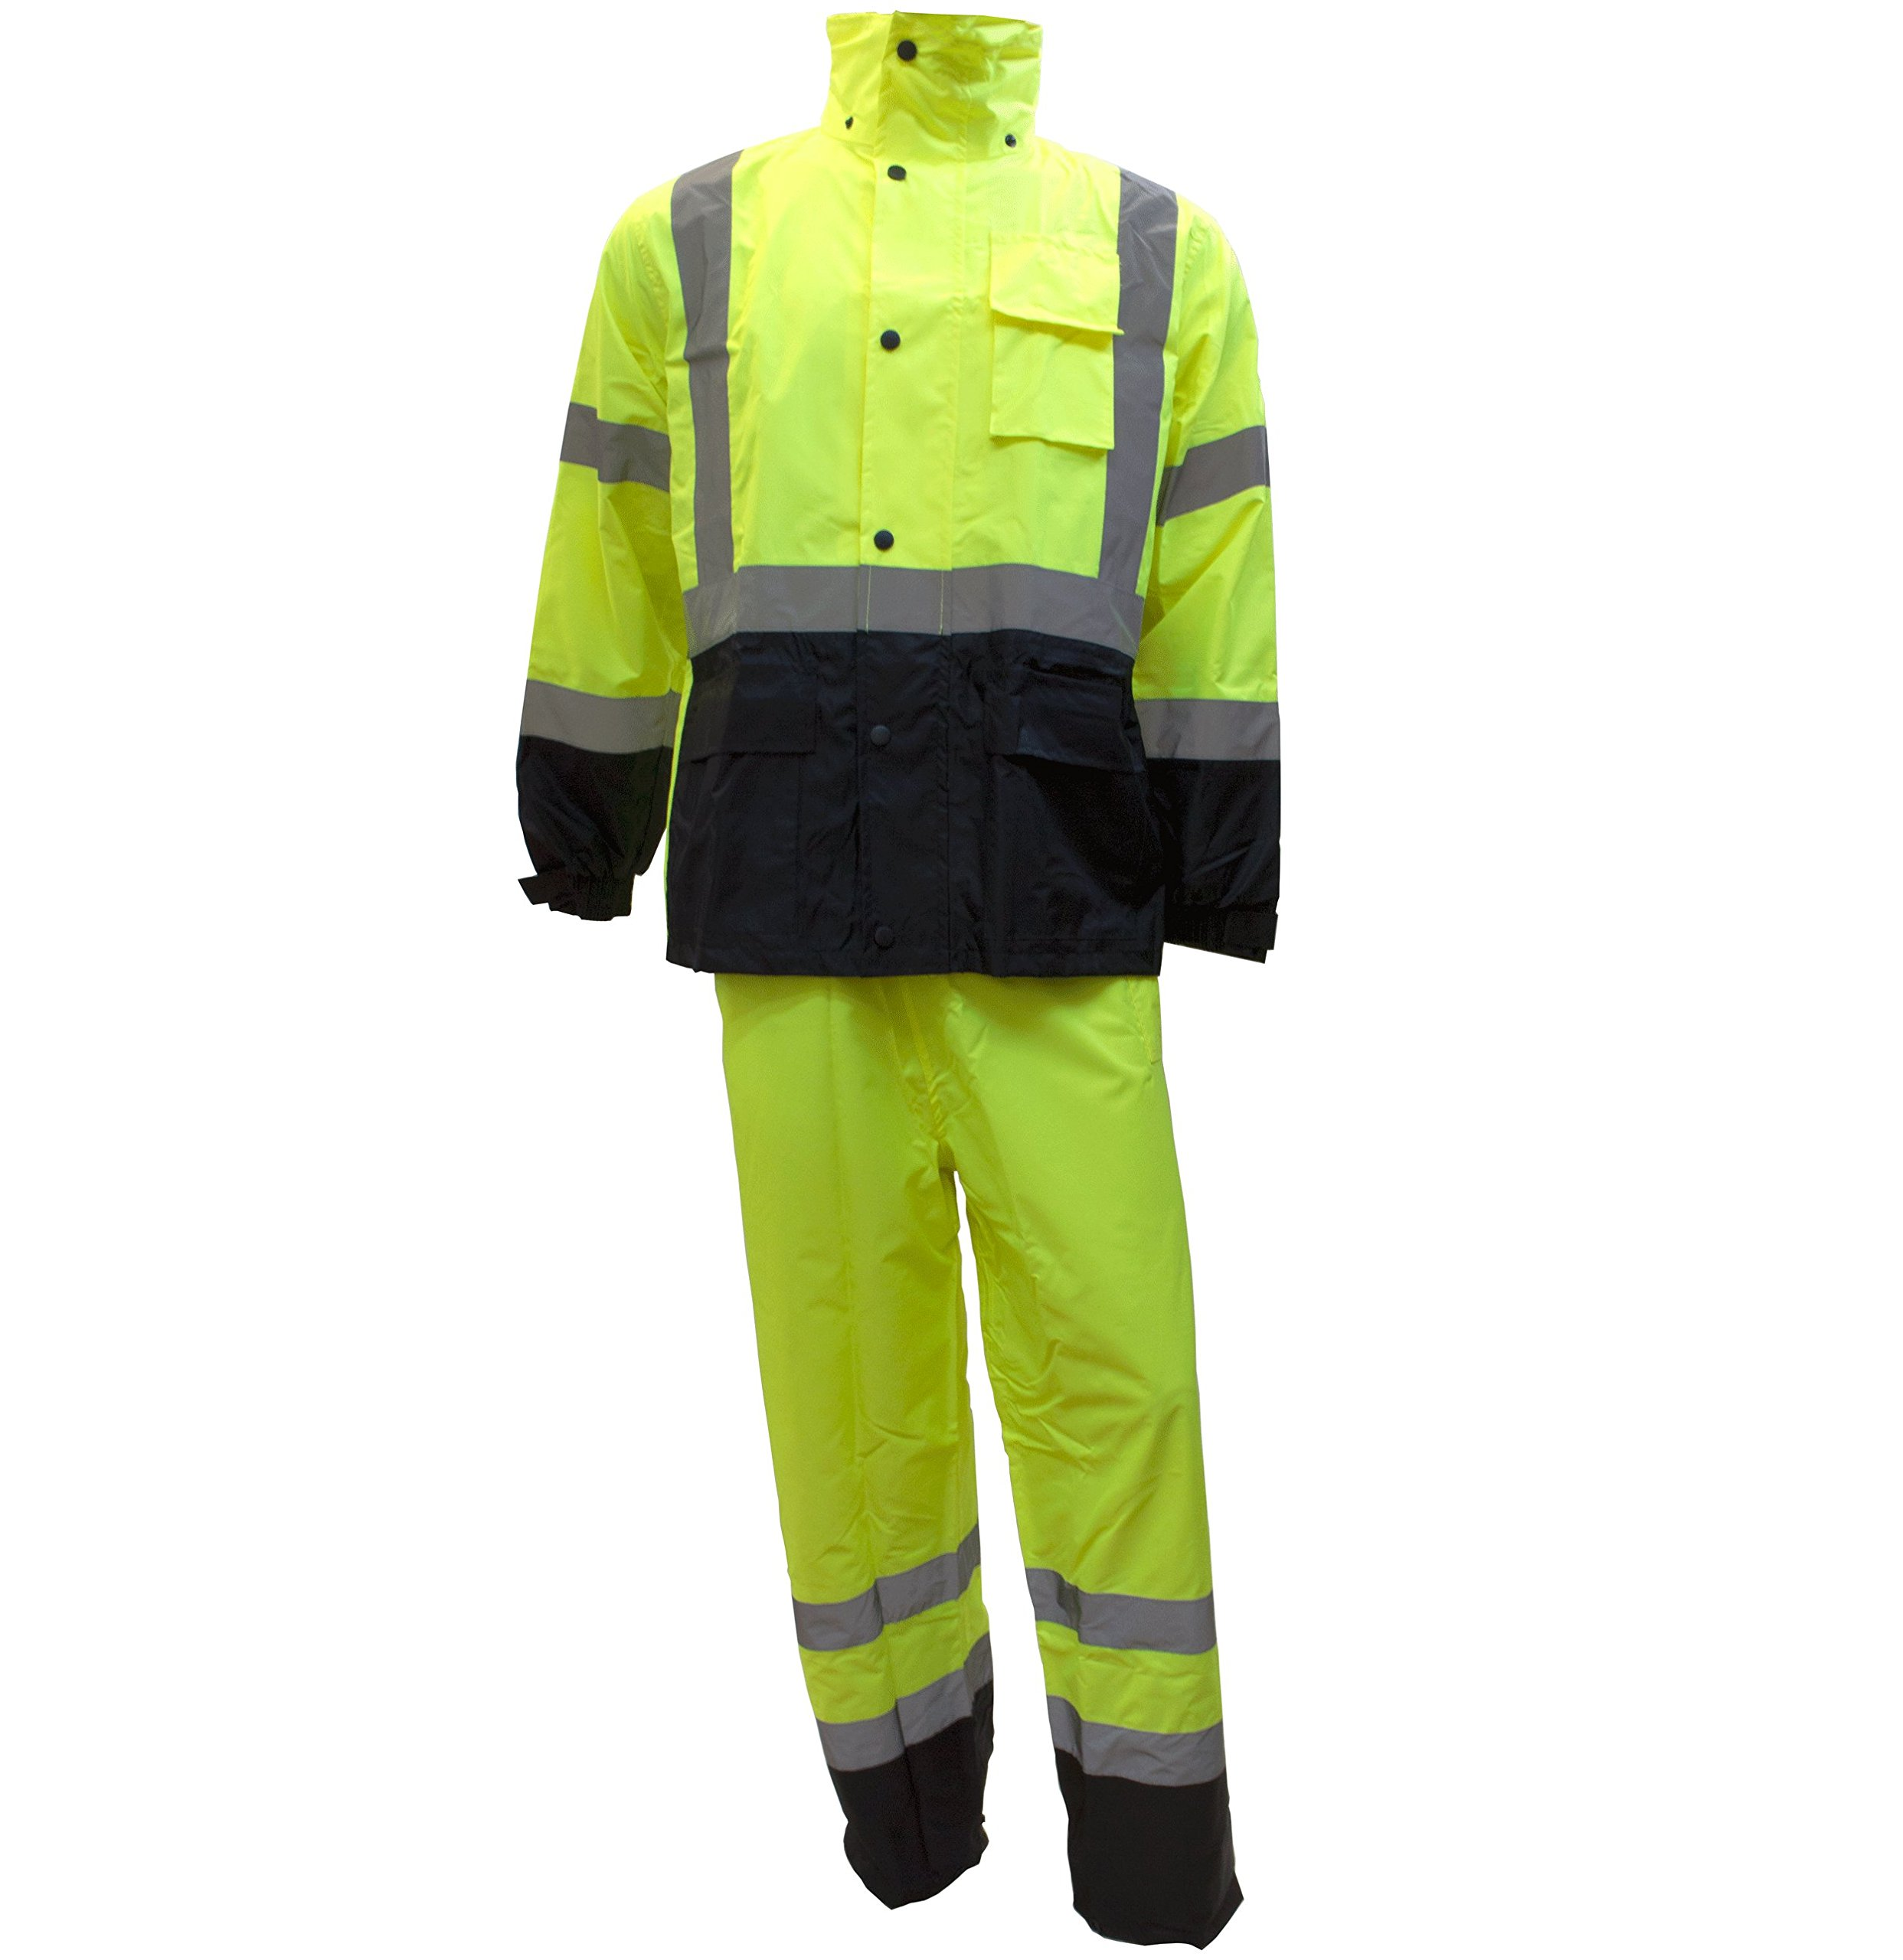 RK Safety Class 3 Rain suit, Jacket, Pants High Visibility Reflective Black Bottom RW-CLA3-LM11 (Medium, Lime) by New York Hi-Viz Workwear (Image #1)